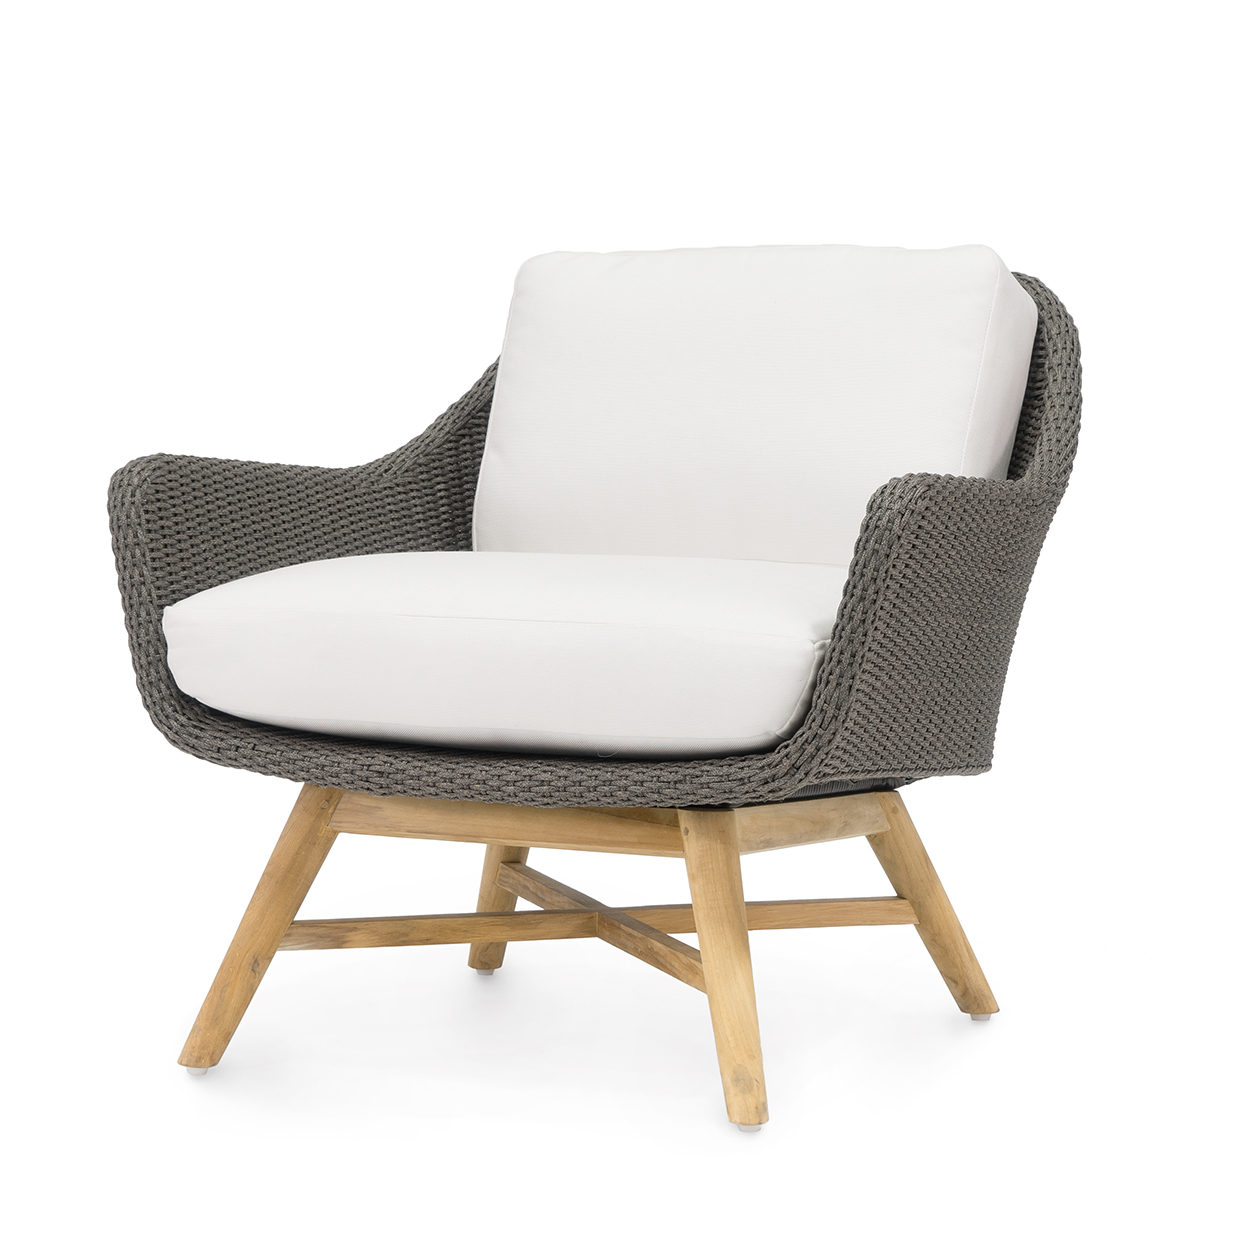 description san remo outdoor lounge chair